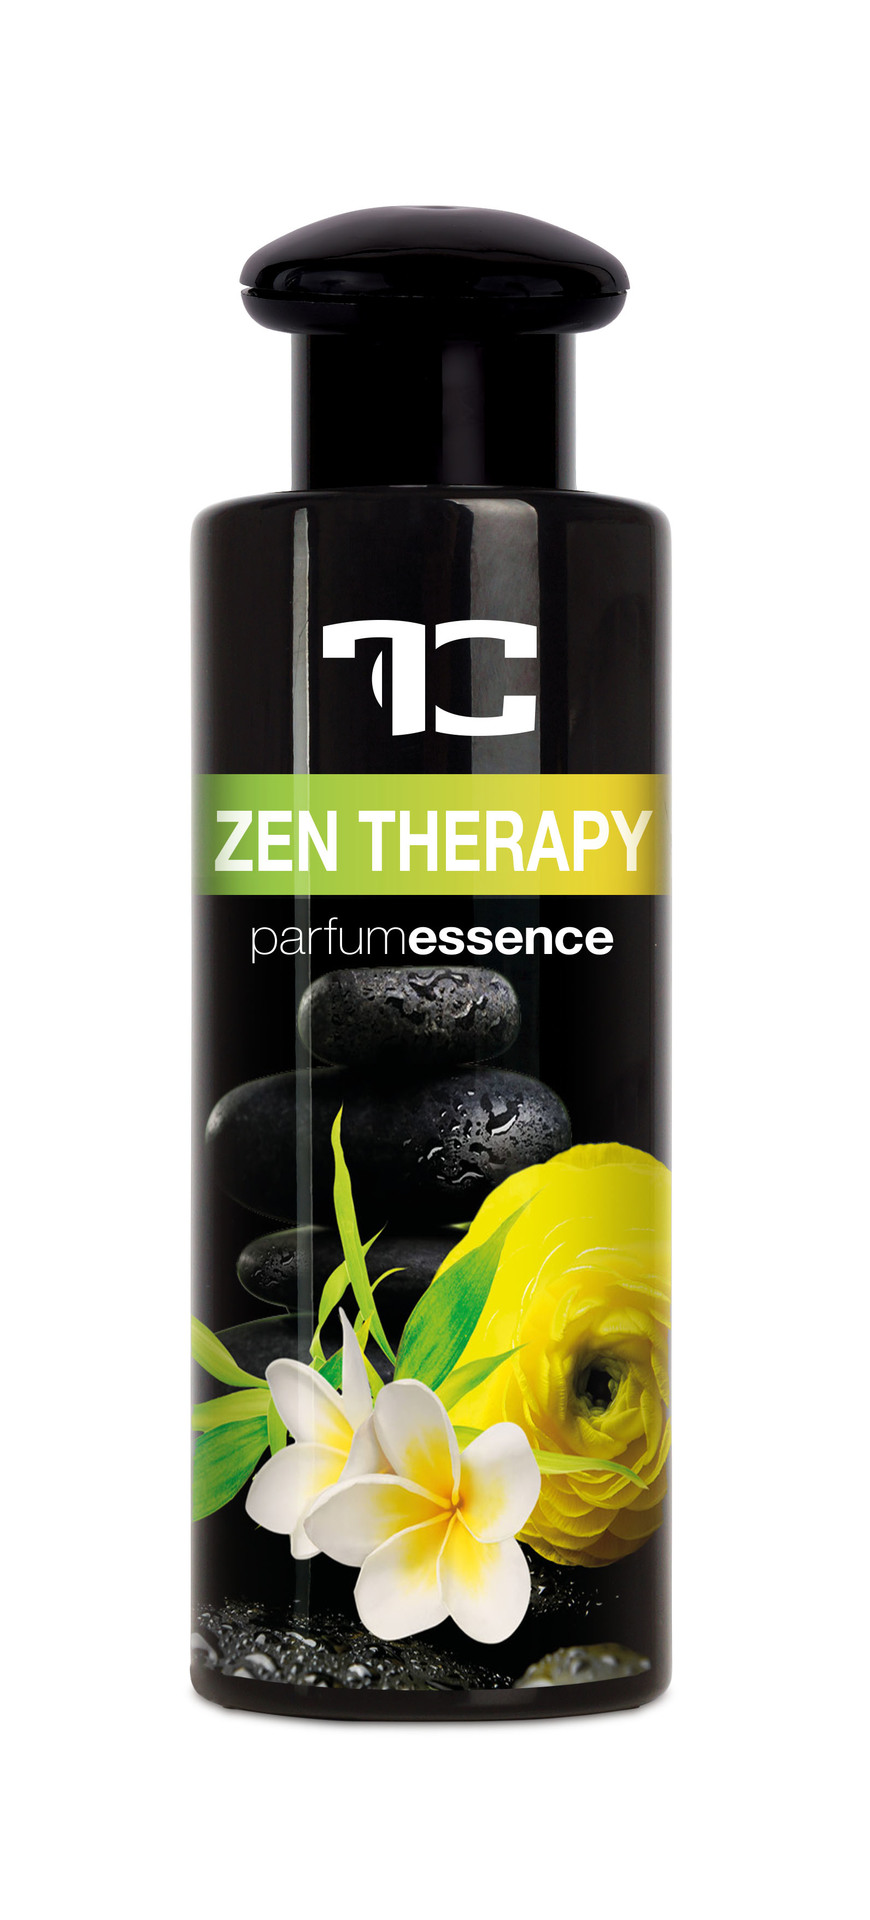 https://dedra.blob.core.windows.net/cms/ContentItems/2863_parfum-essence-zen-therapy-parfemova-esence/images/fc0390-zen-therapy-parfum-essence-black.jpg